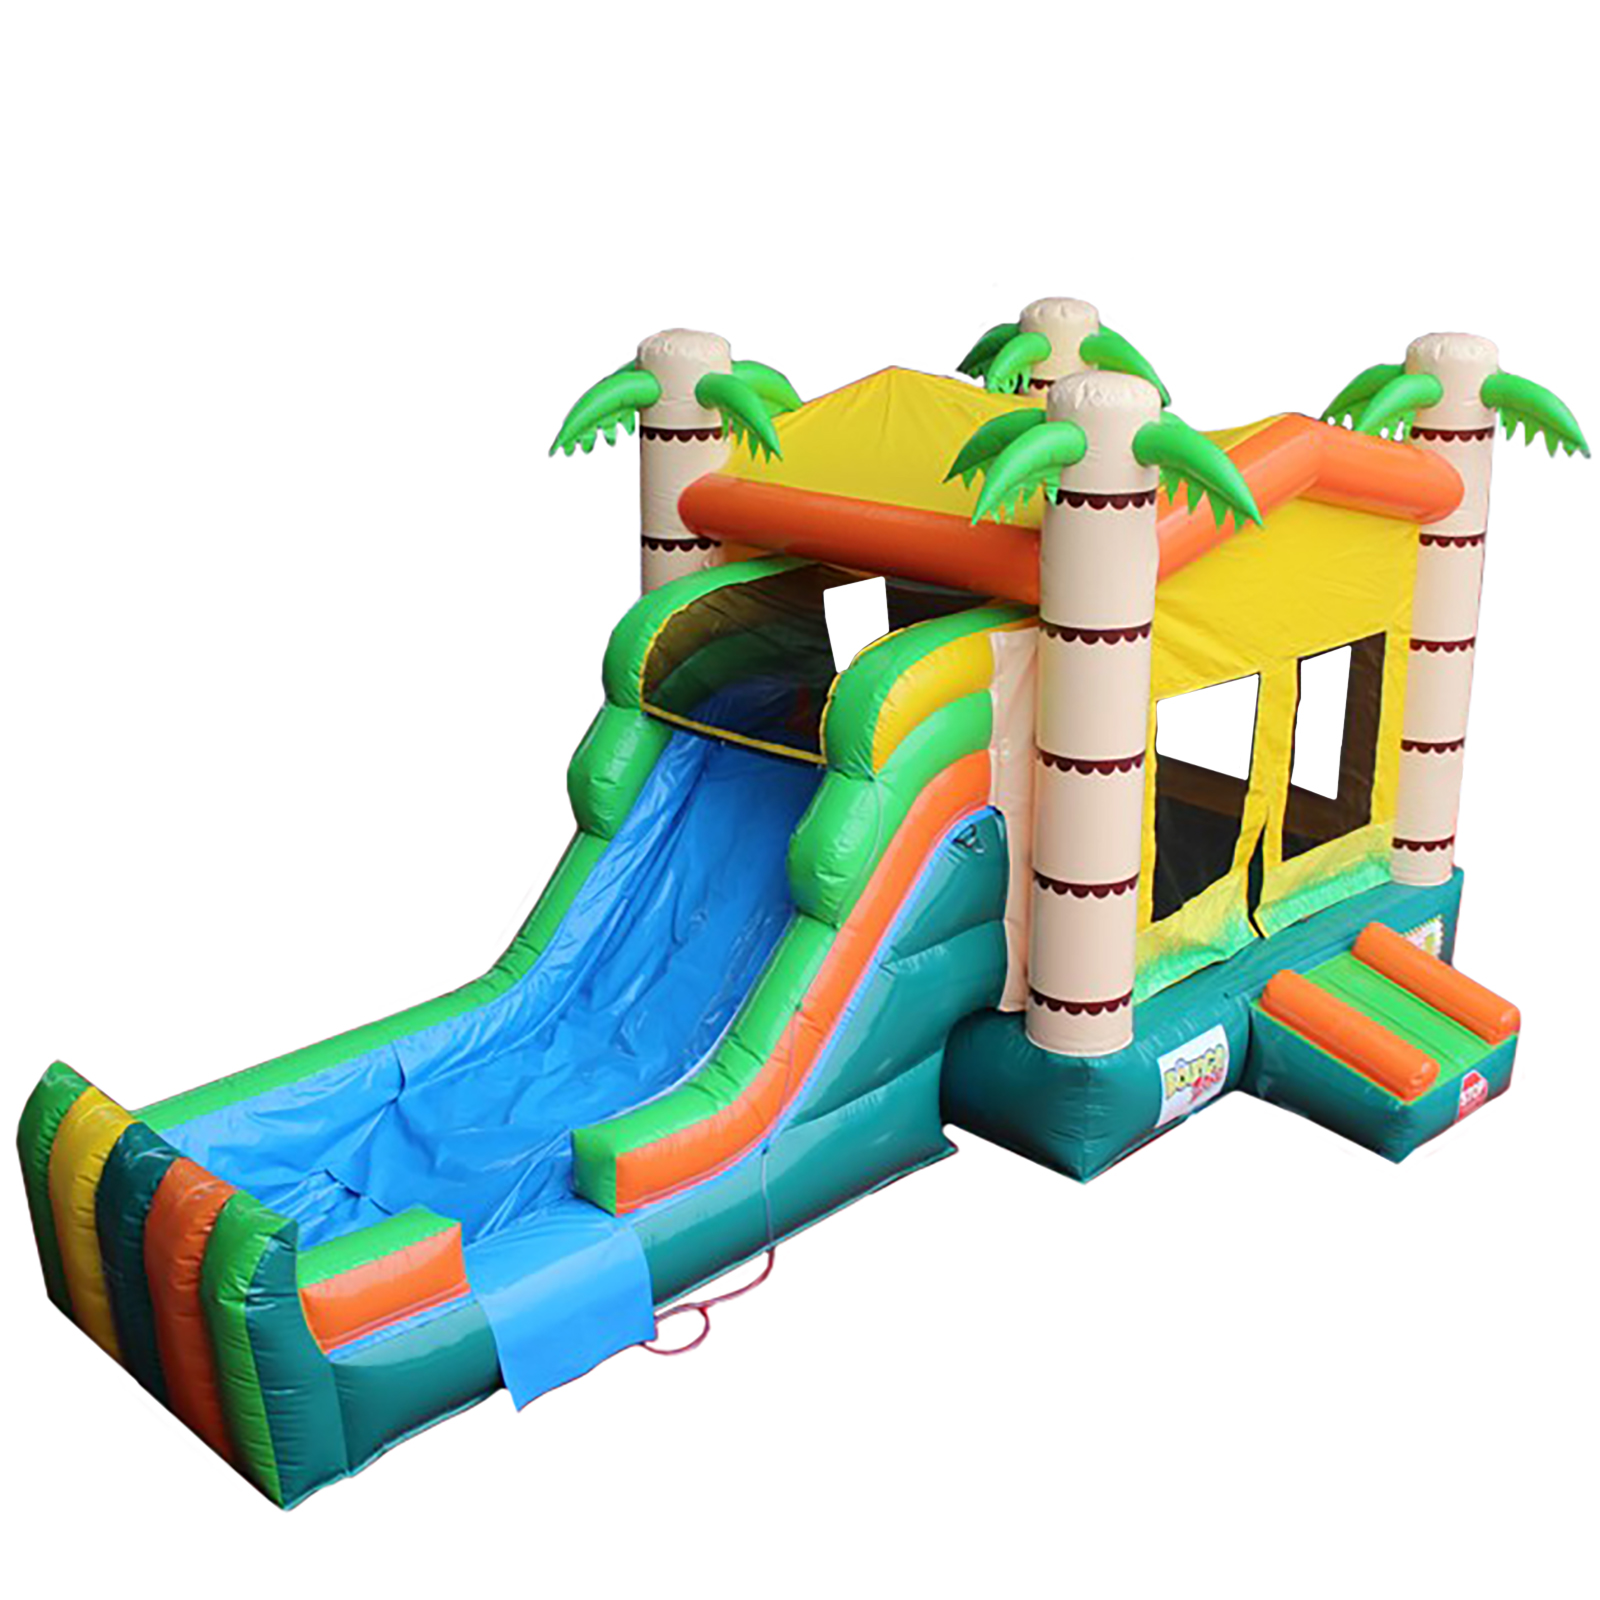 Inflatable Commercial Grade Bounce House Tropical 100% PVC With Blower